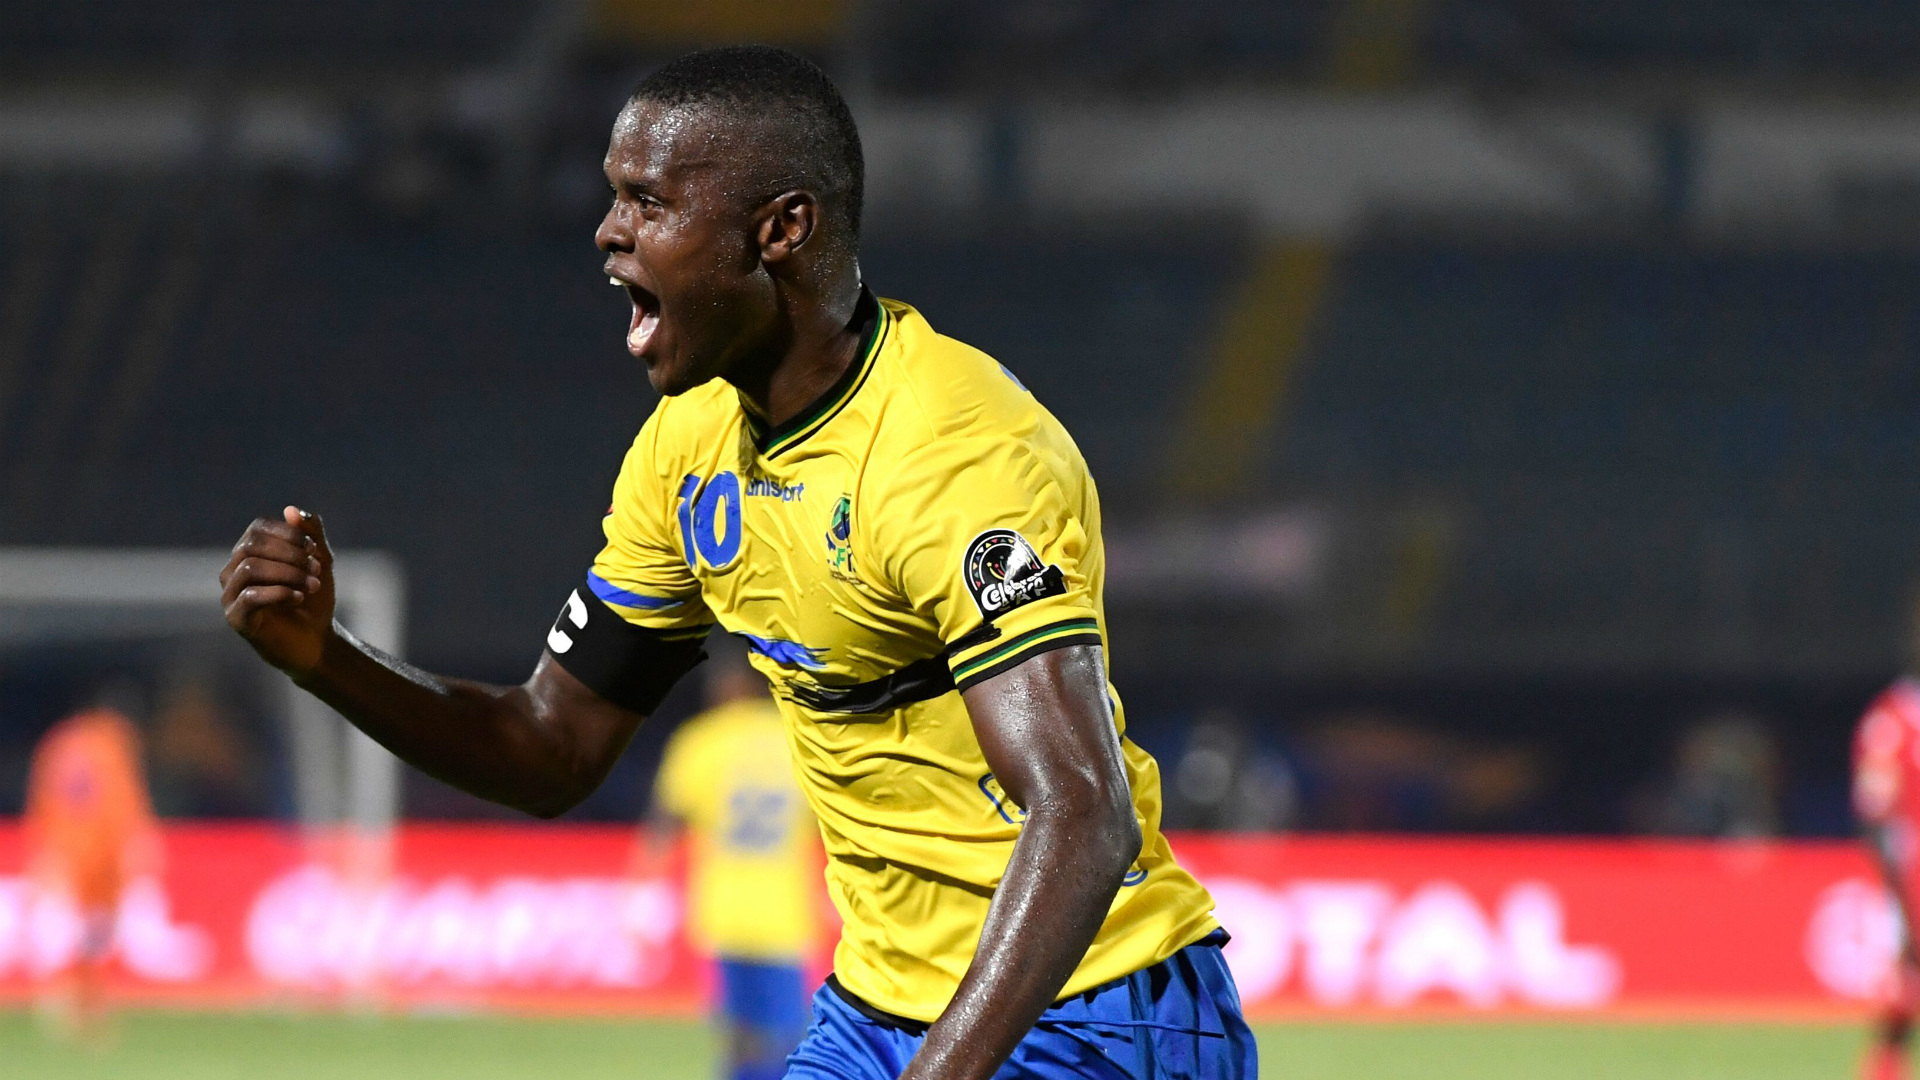 Afcon 2021 Qualifiers: Tanzania must strive to reach each final – Samatta